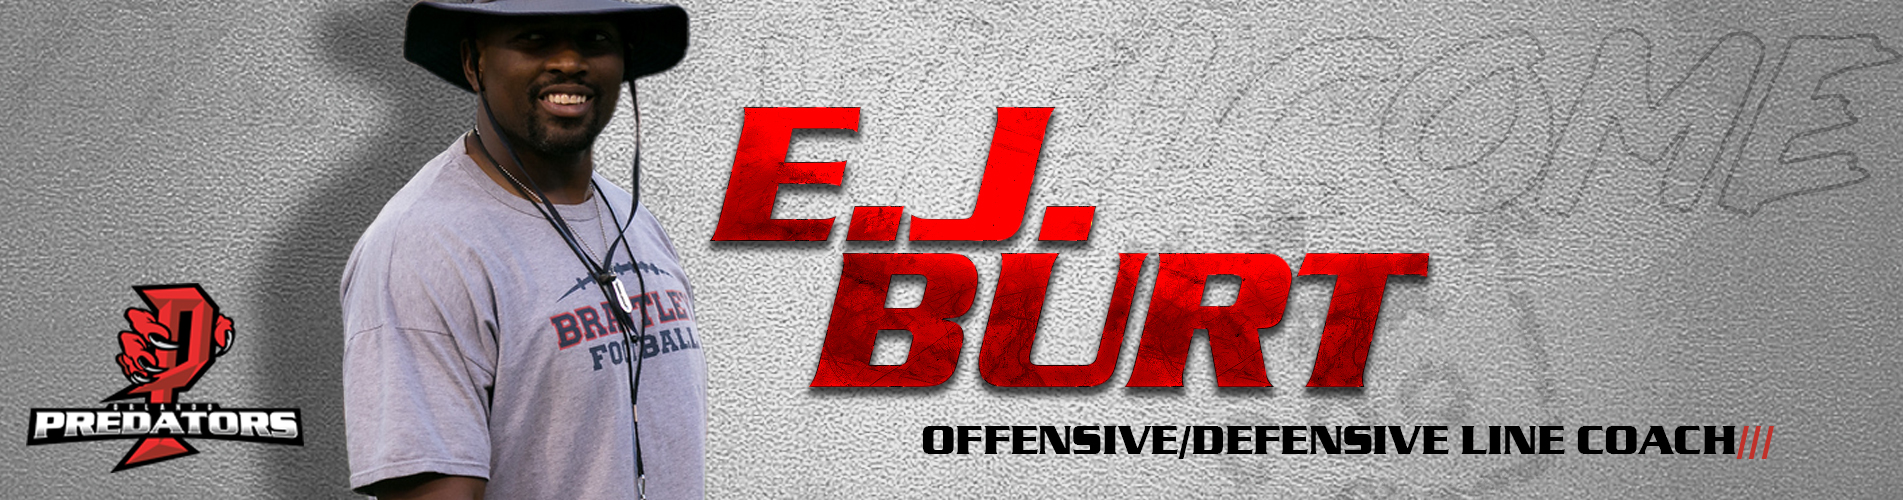 E.J. Burt Offense/Defensive Line Coach, Linebackers/Fullbacks Coach for Orlando Predators